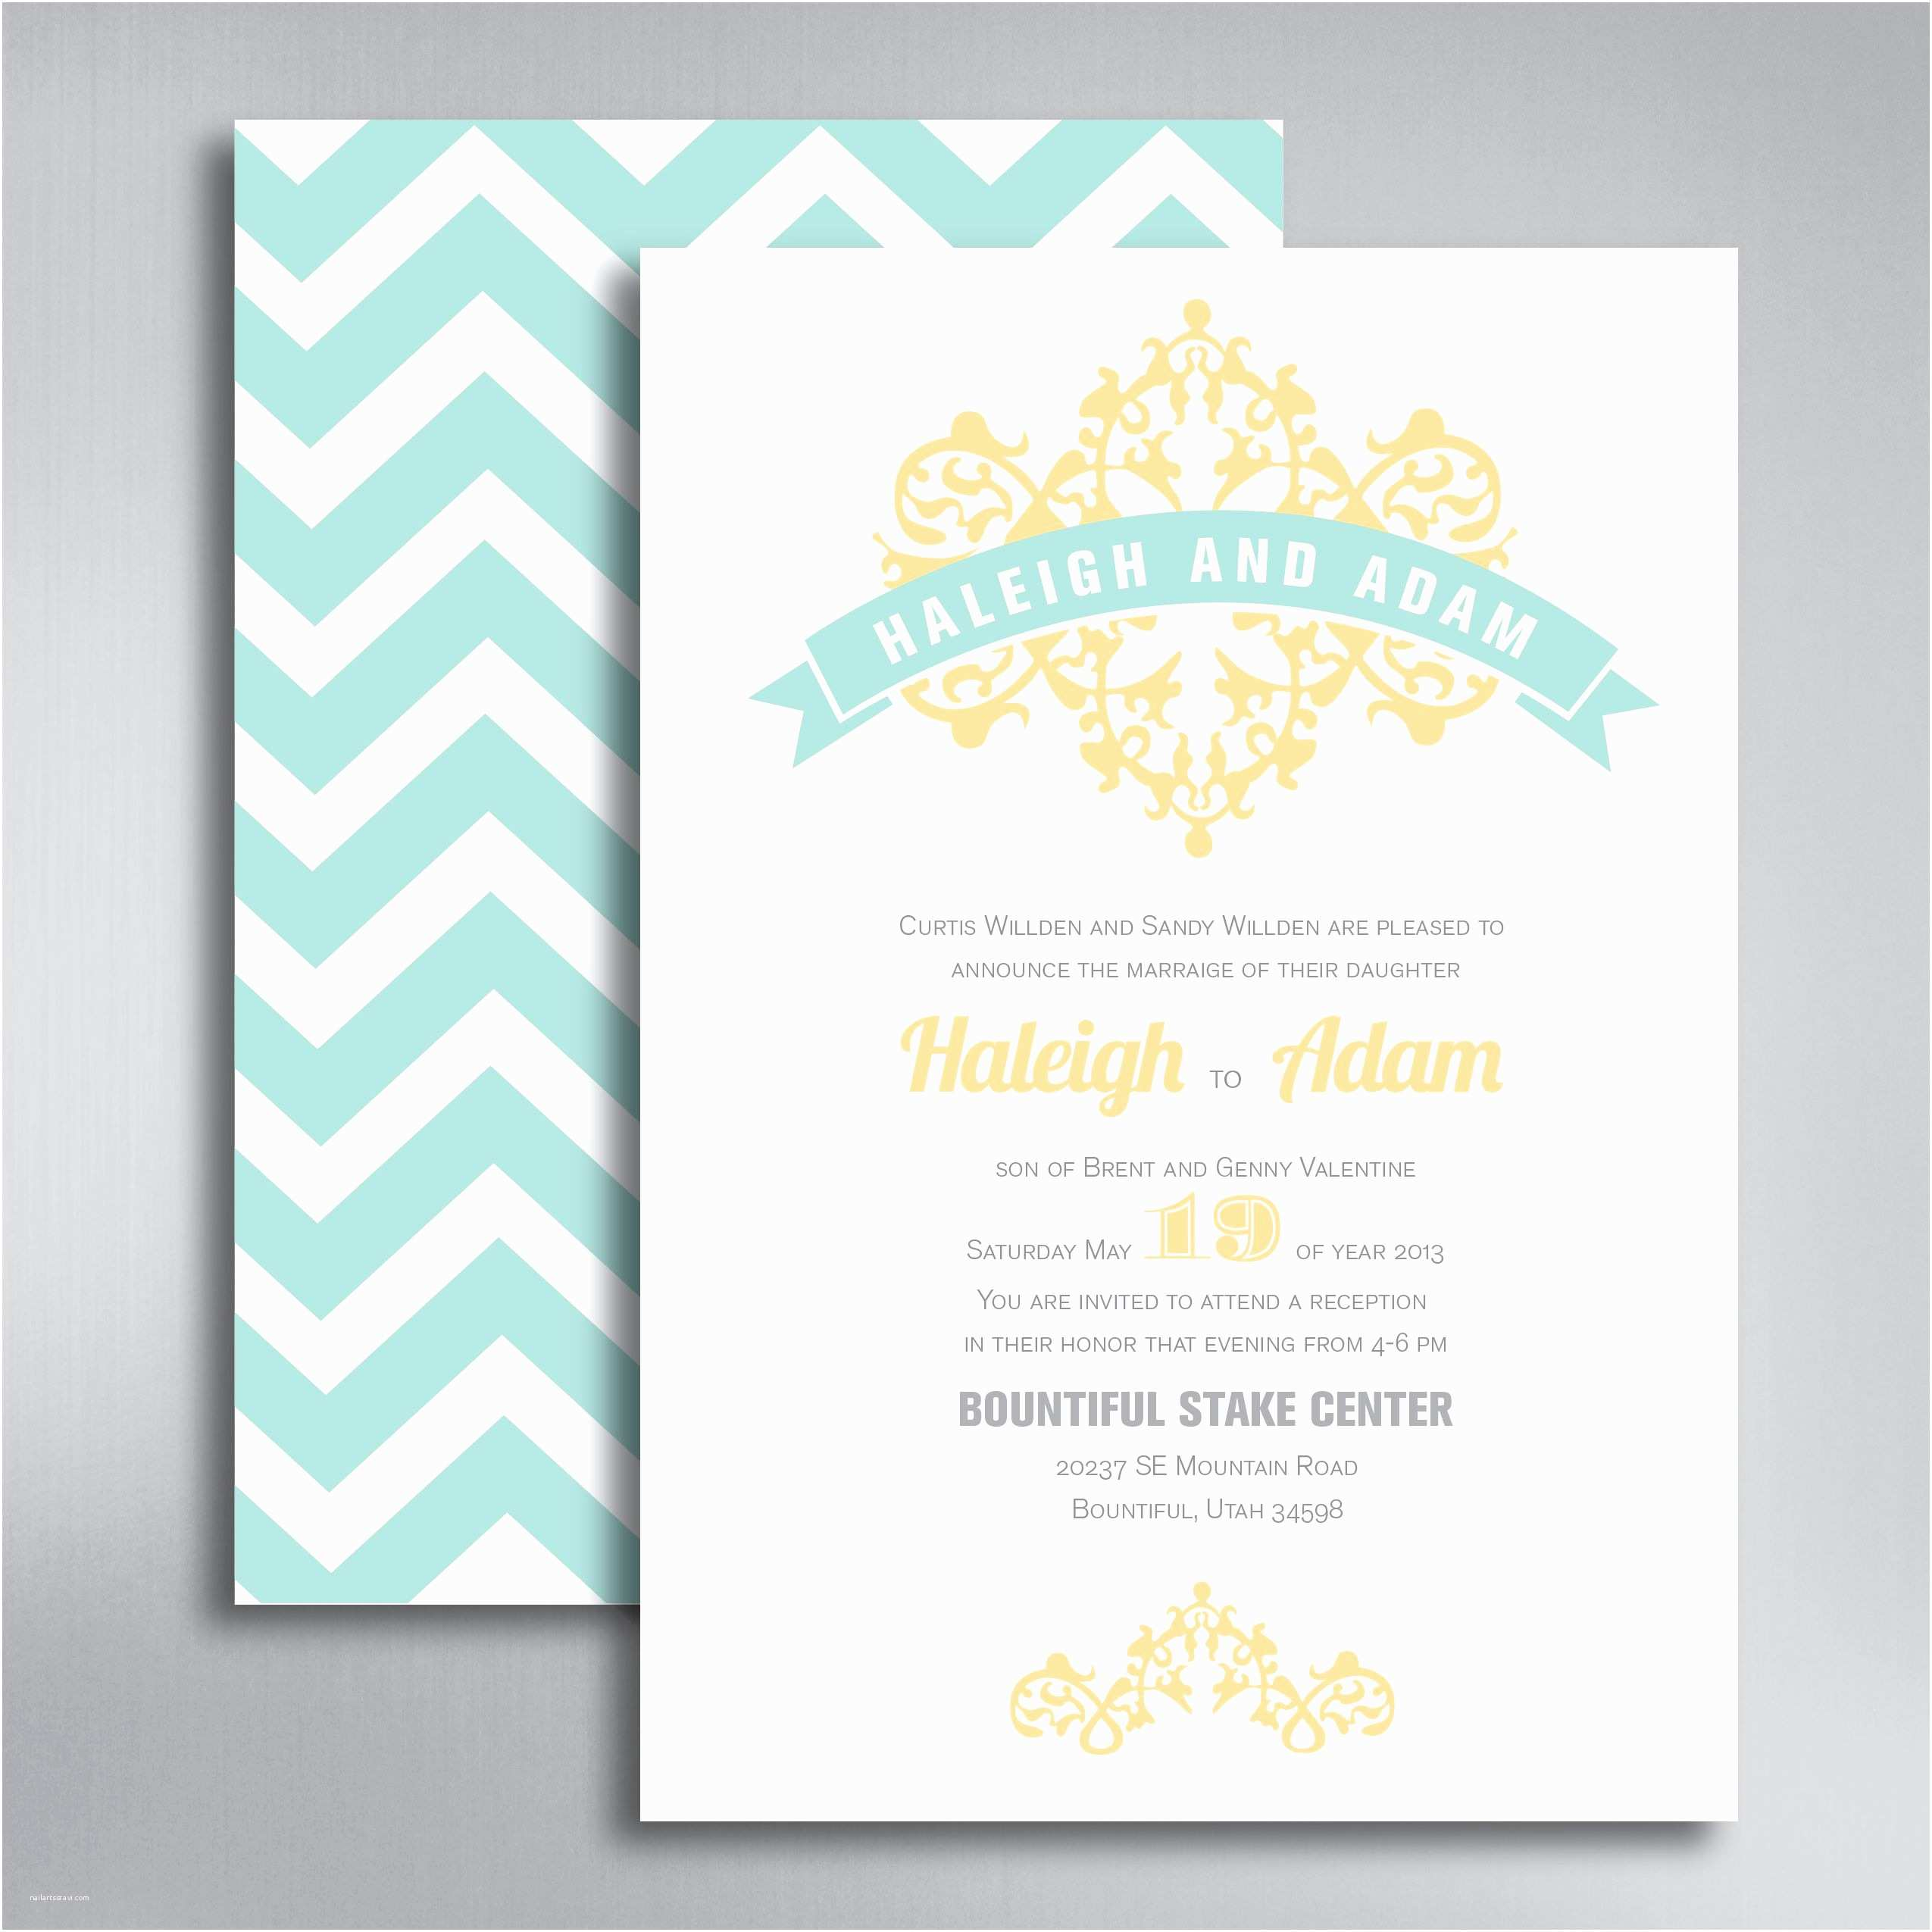 Wedding Reception Invitations event Invitation Wedding Invitations Reply Cards Card